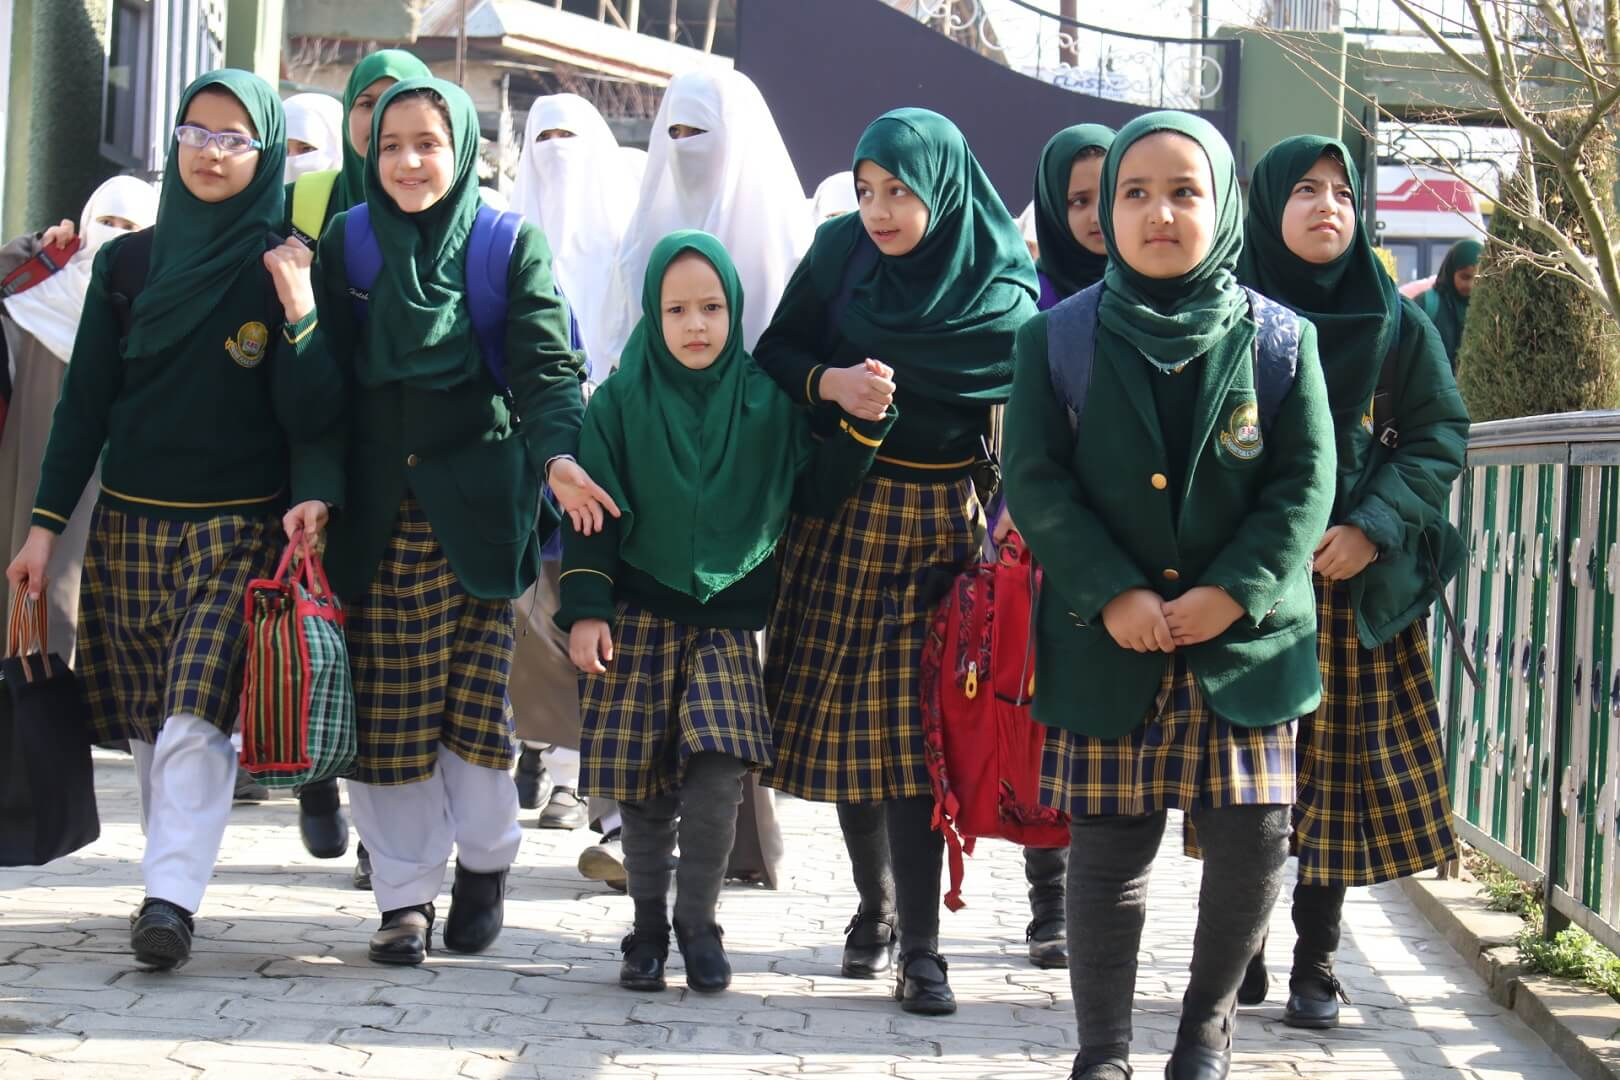 Kashmir govt intending to reopen schools from mid-June